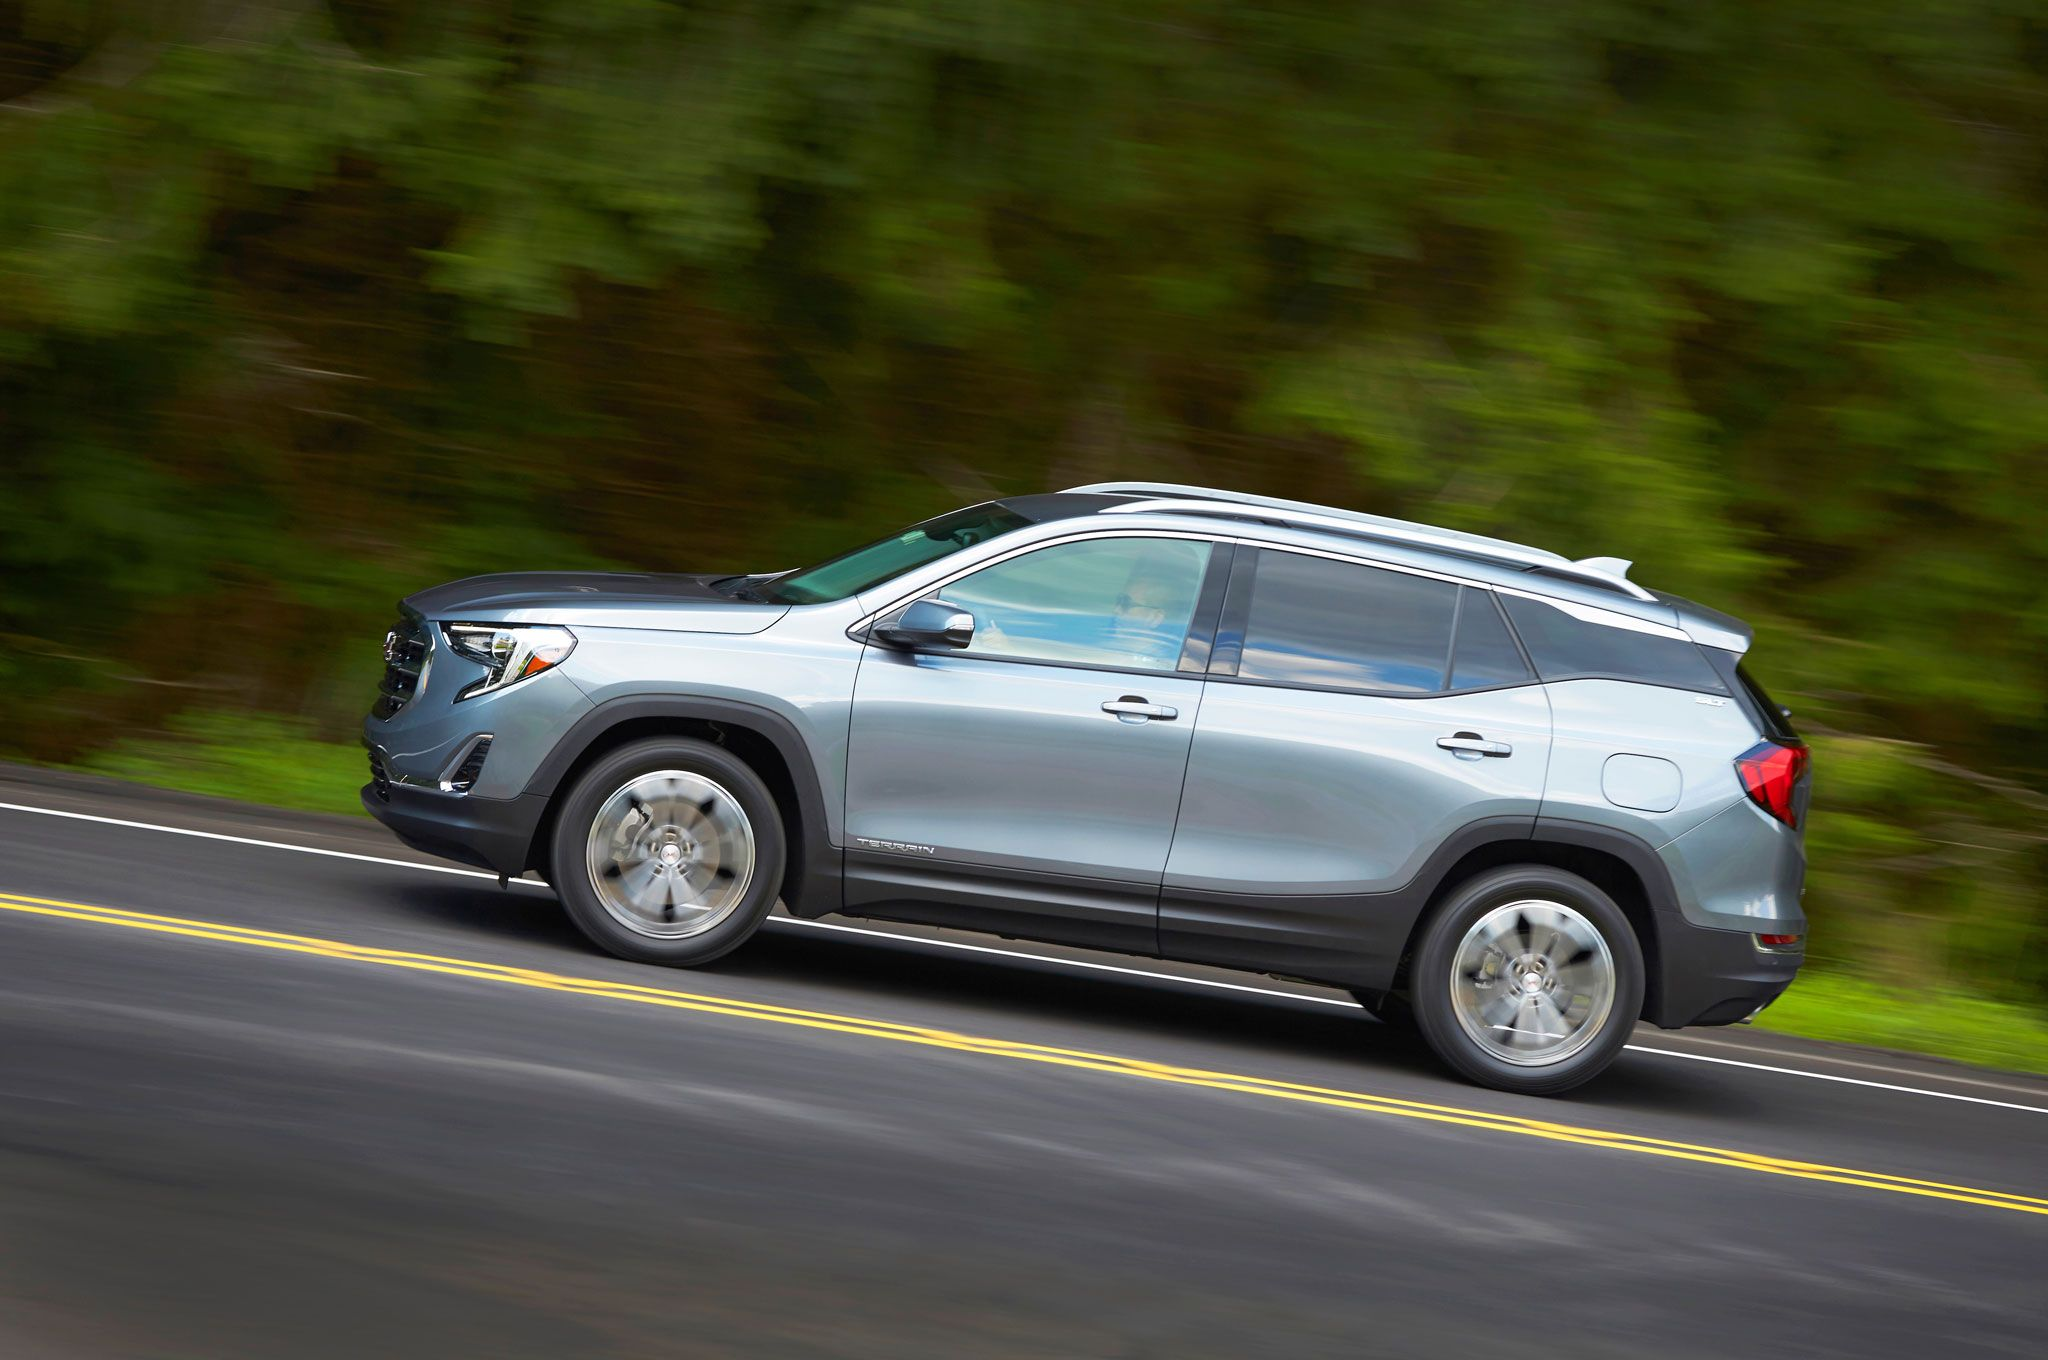 2018 gmc terrain slt review by thom cannell. Black Bedroom Furniture Sets. Home Design Ideas